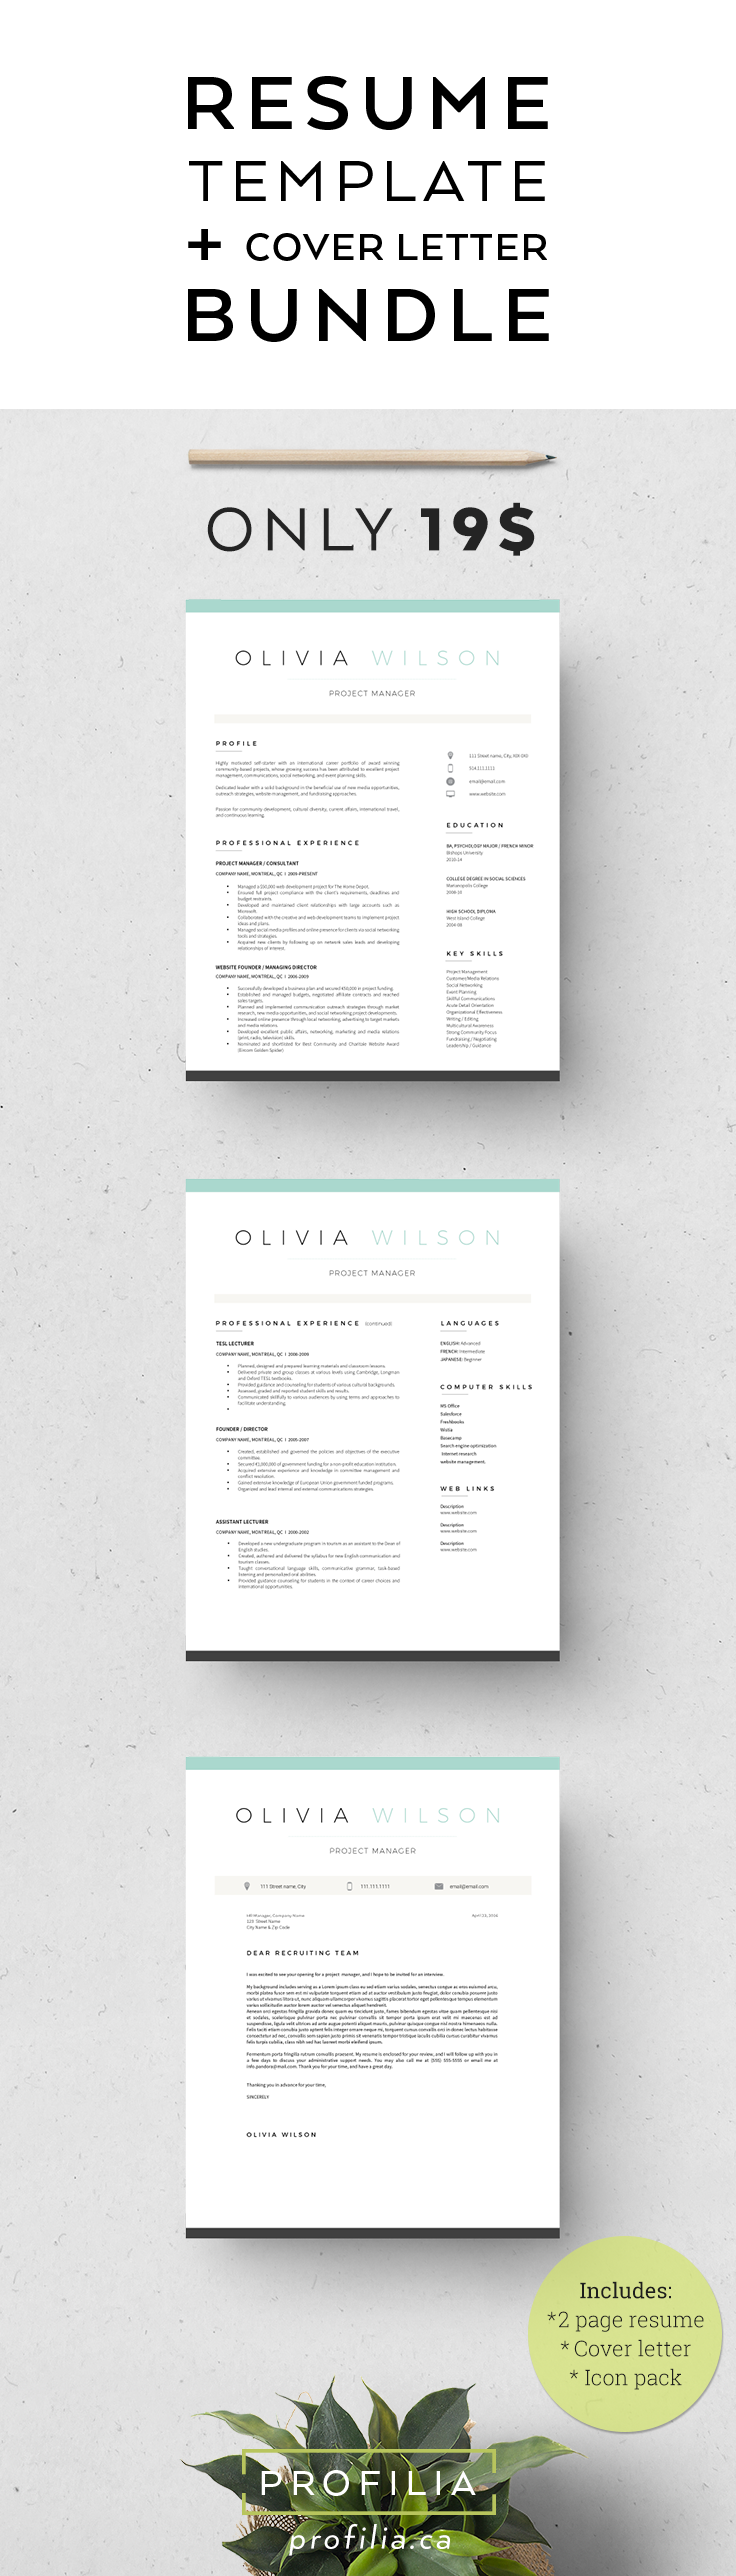 Font For Cover Letter Modern Resume & Cover Letter Bundle  Editable 3 Page Word